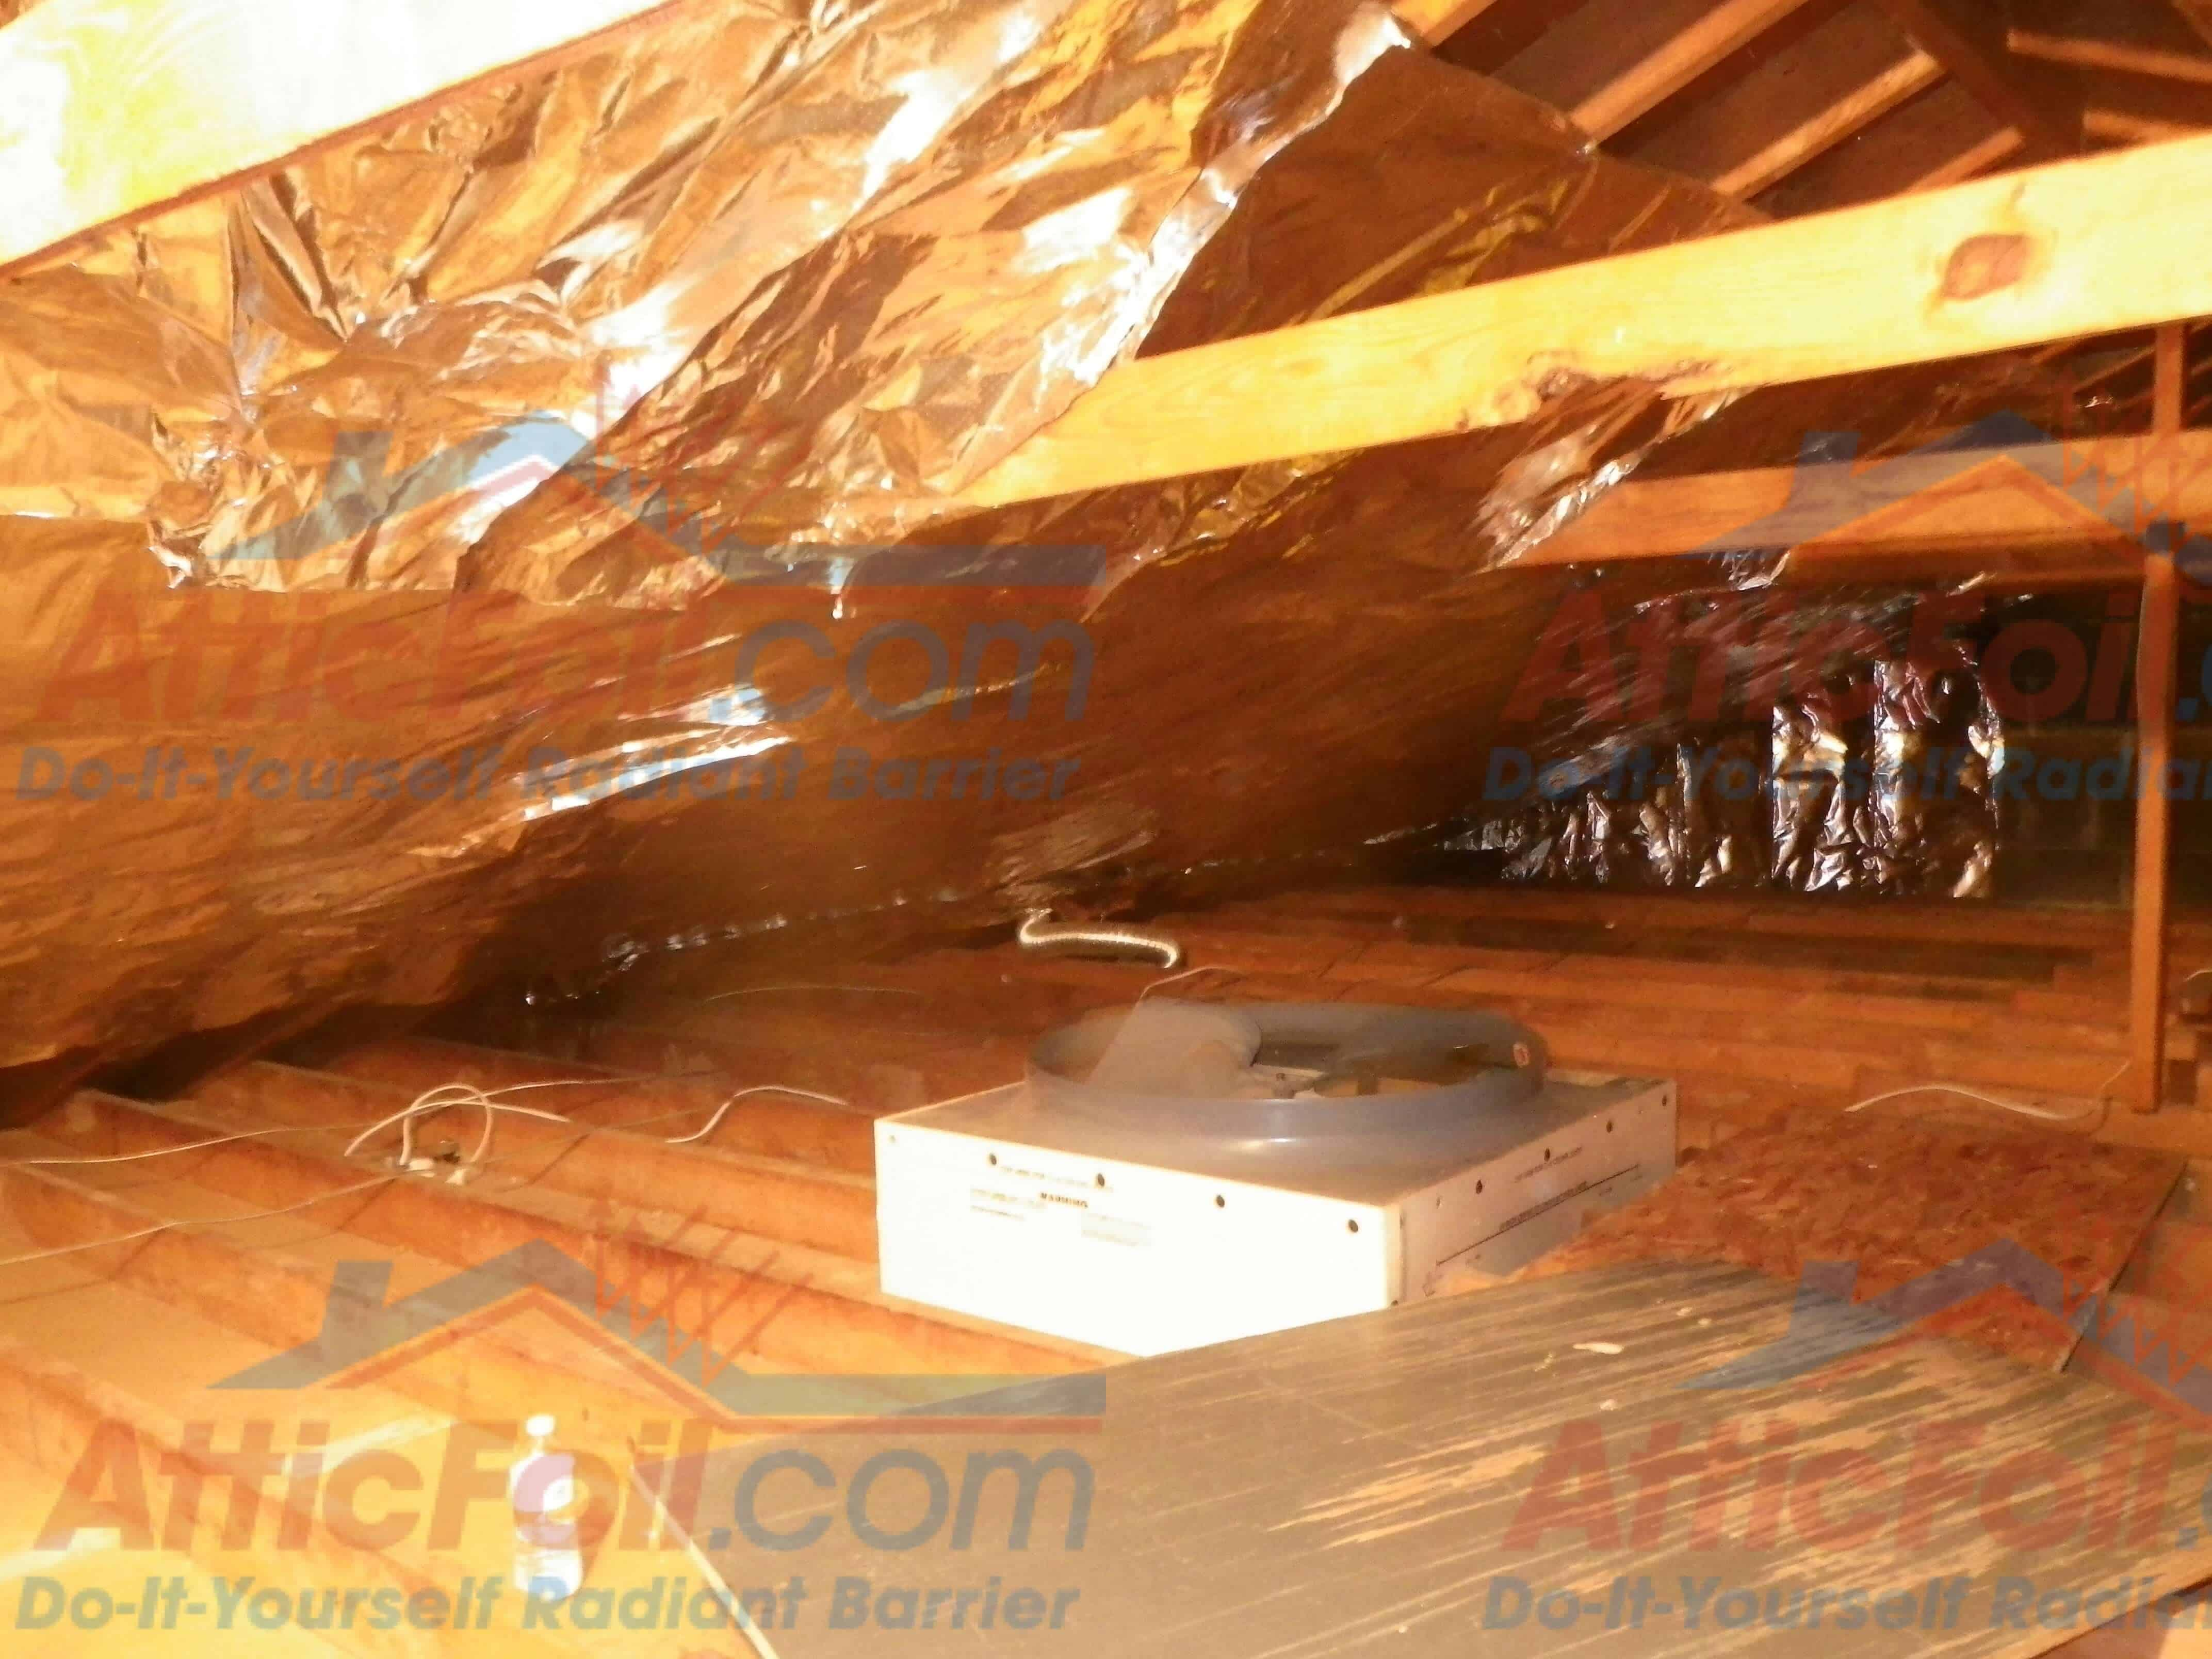 Gallery staple up installs atticfoil radiant barrier do it to see complete install instructions for a traditional rafter attic go here to see complete install info for a truss attic go here solutioingenieria Choice Image